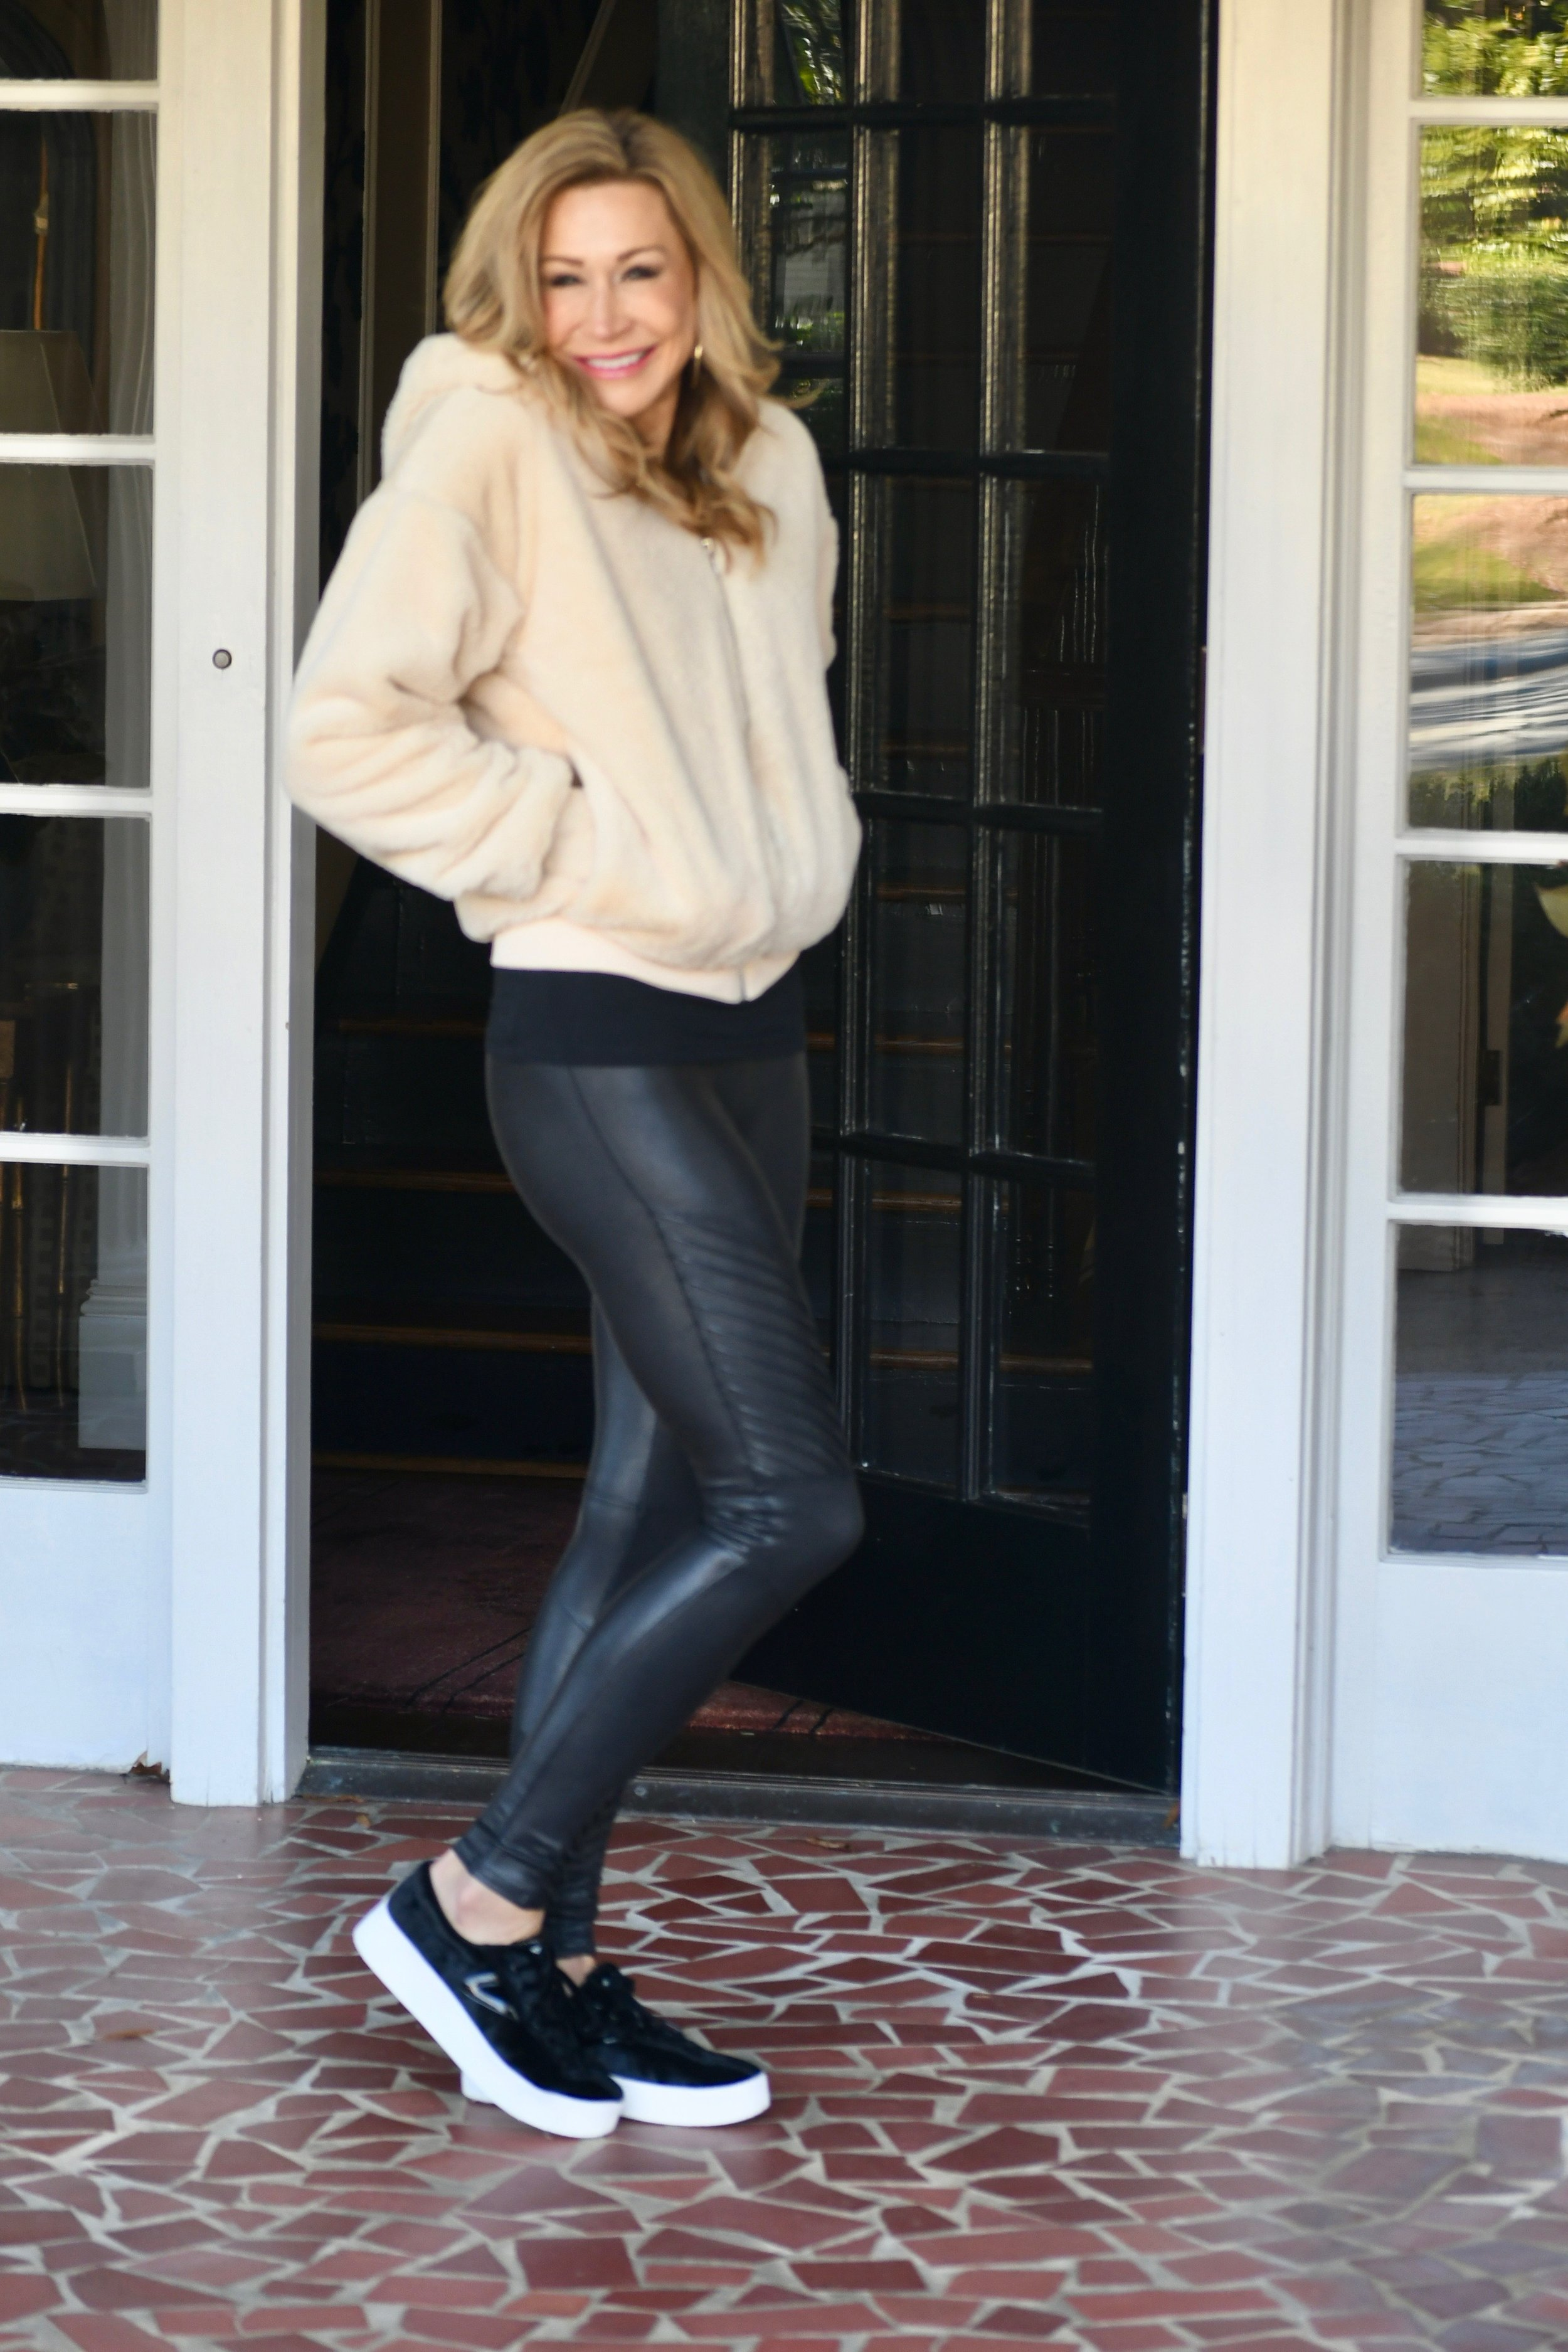 Spanx moto leggings with TopShop jacket and Tretorn sneakers